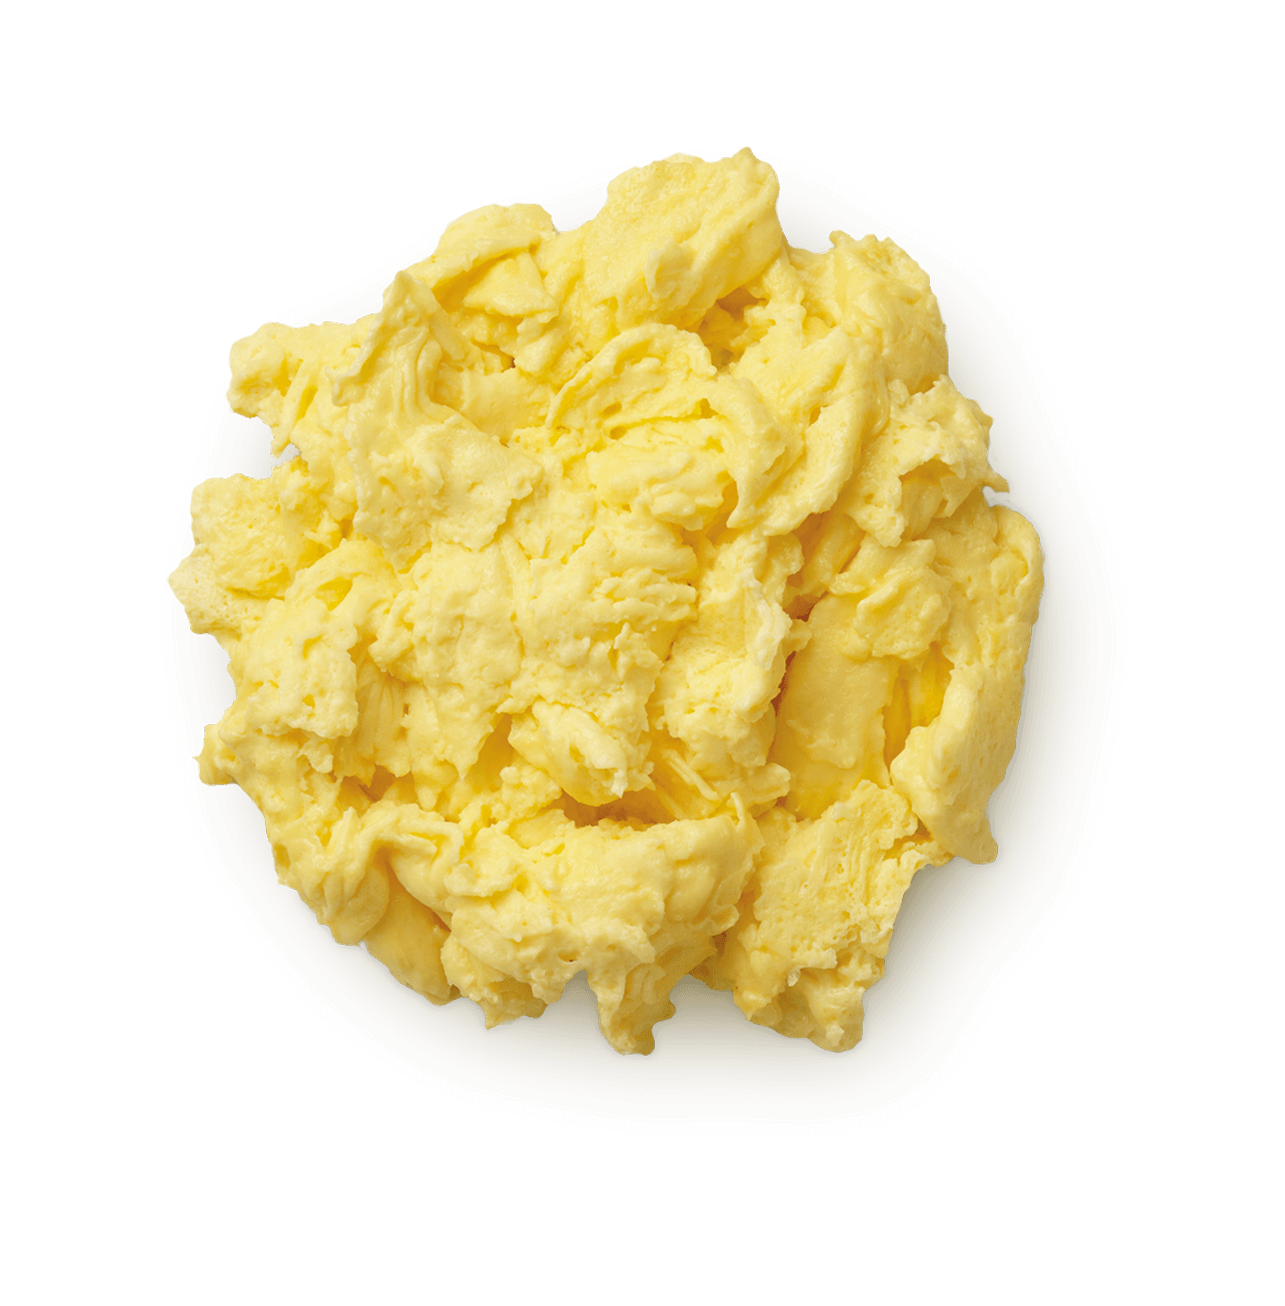 png library library Scrambled eggs png